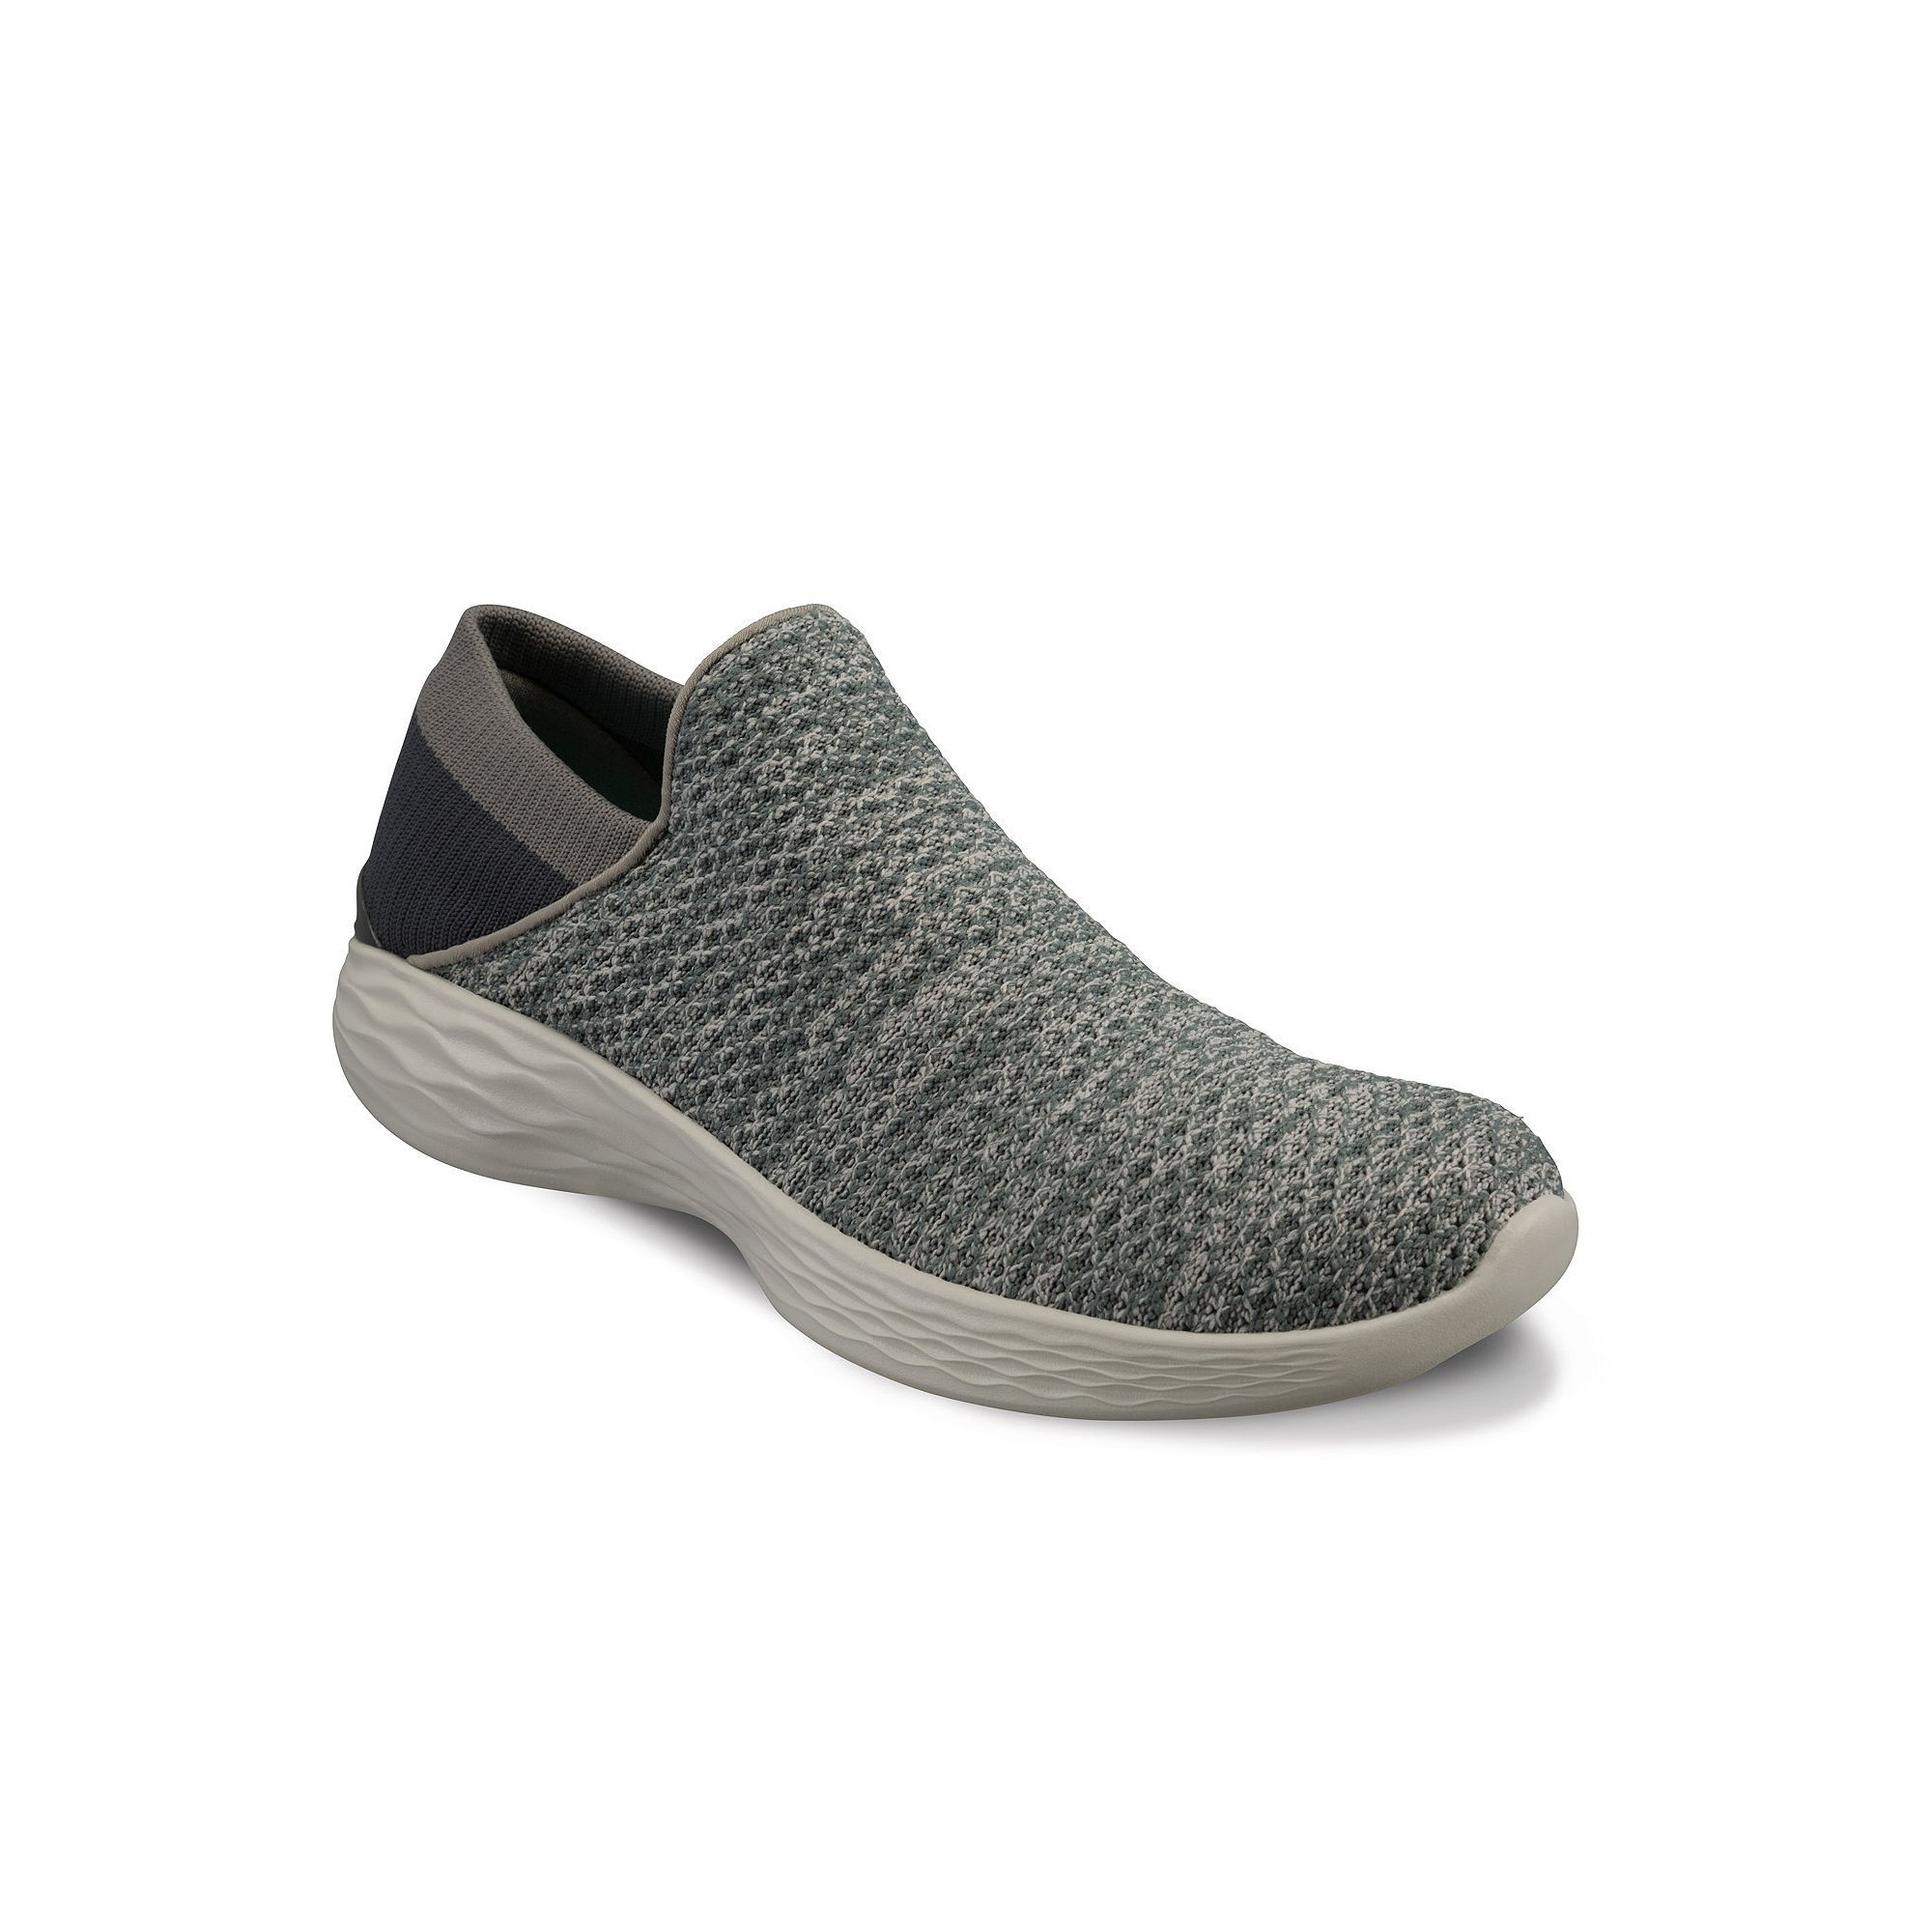 Skechers Glaxies Slip-On Sneakers-Women's szie 8.5 Gray